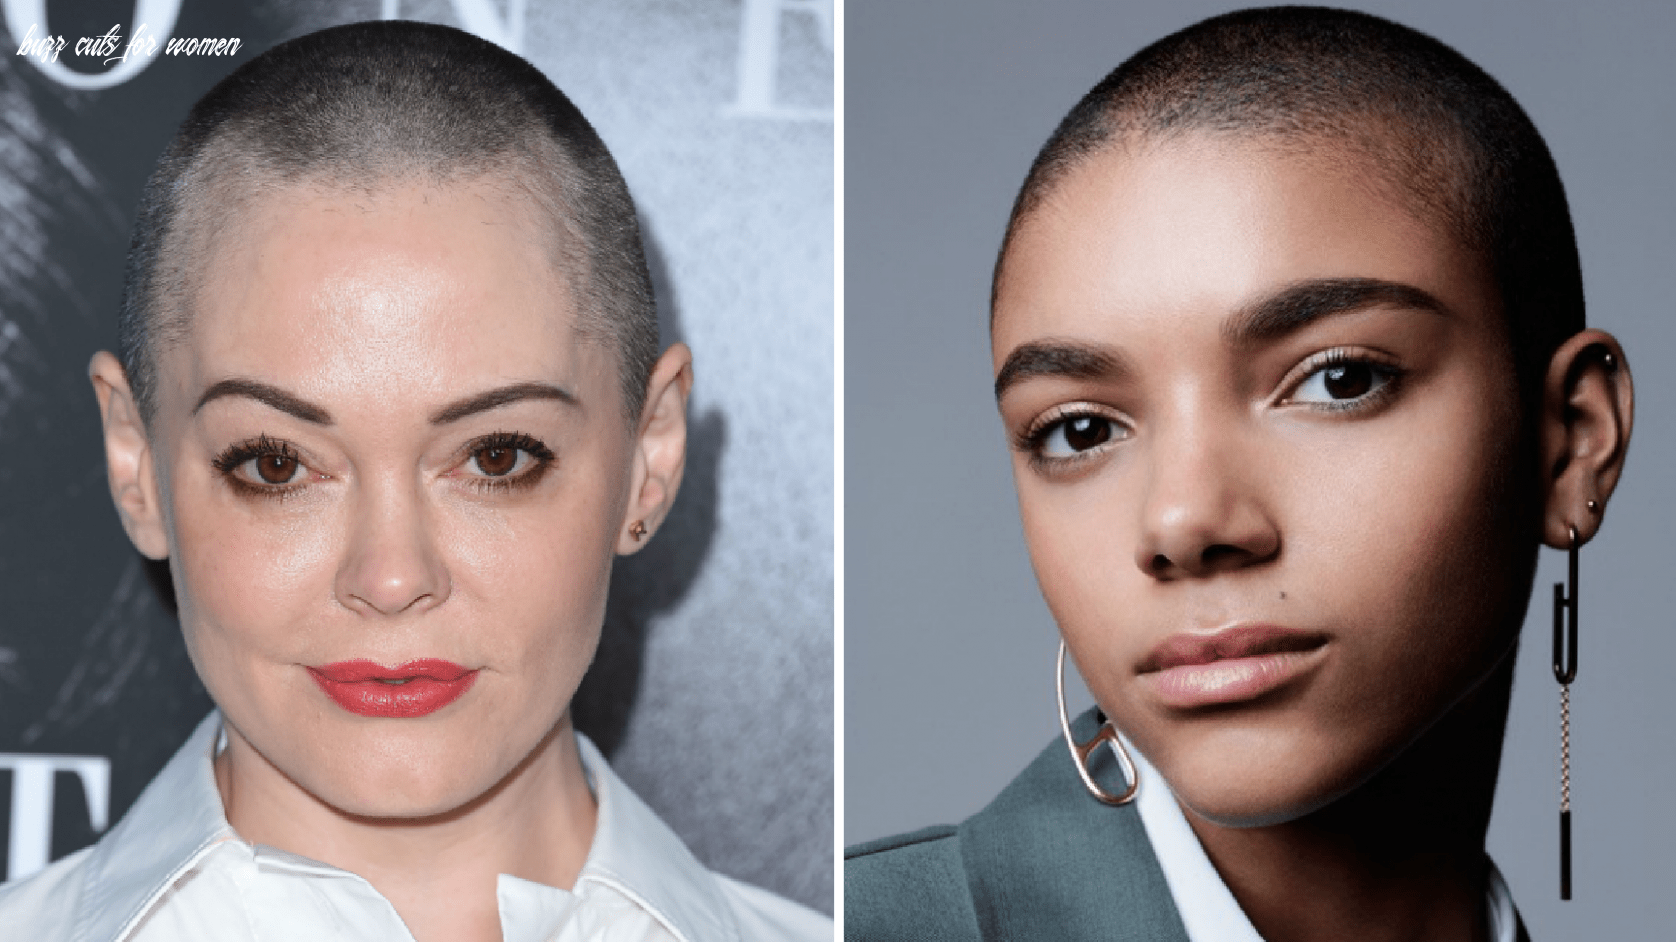 11 Women With Buzz Cuts Share Why They Shave Their Heads   Allure